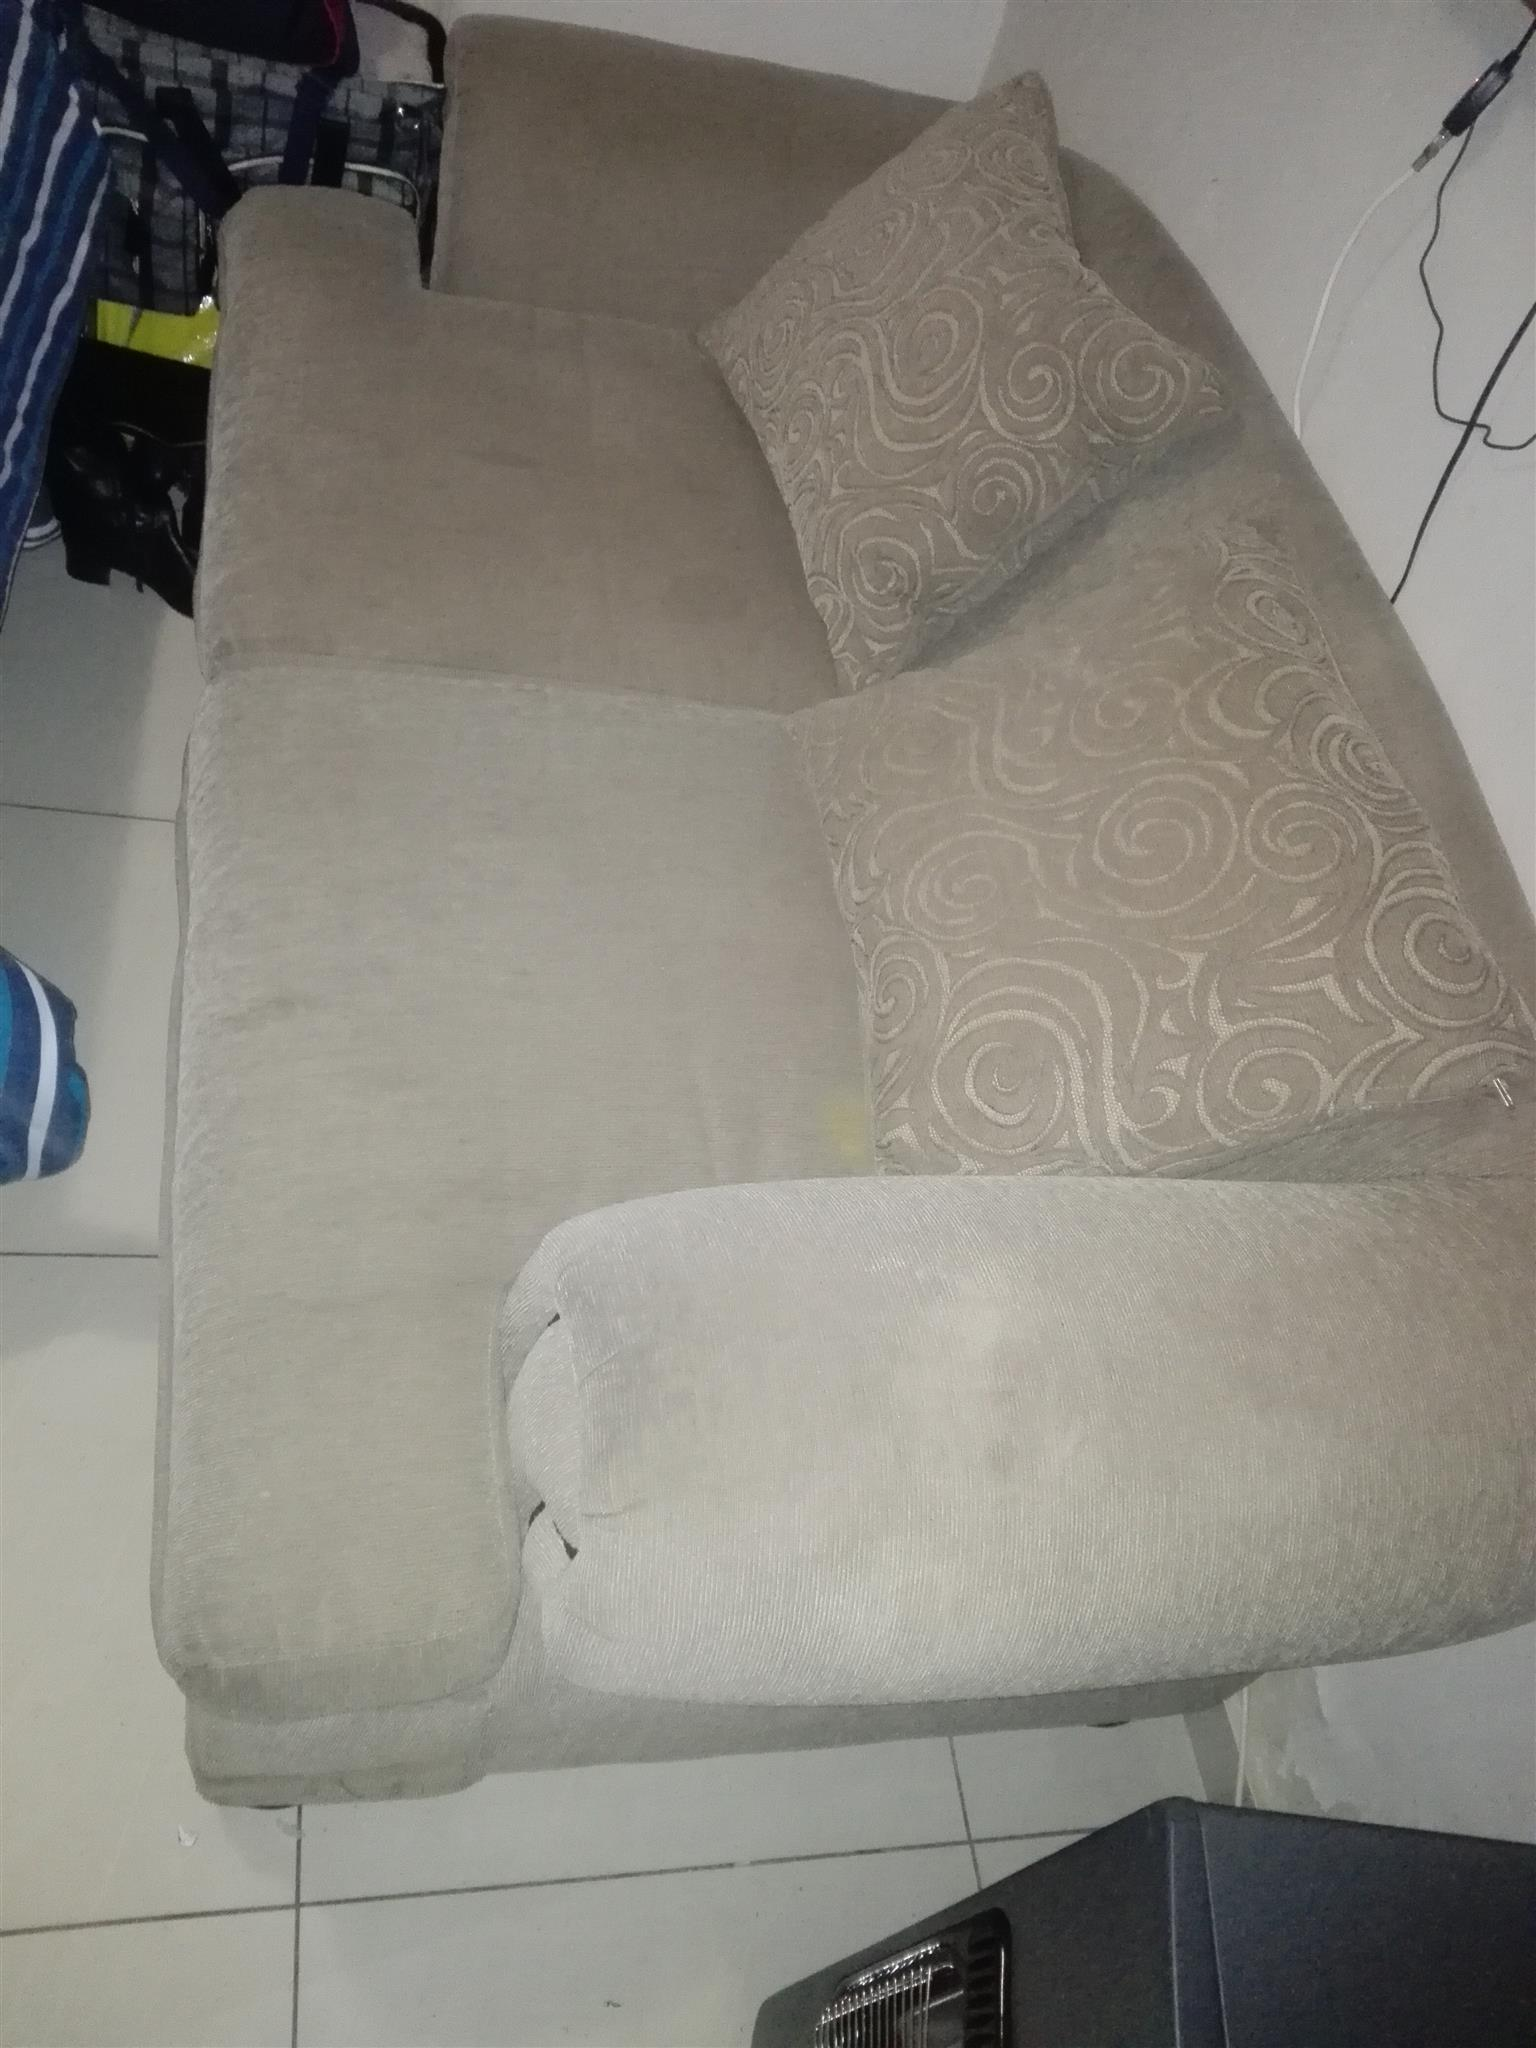 2 - Seater Couch Crytal for sale. Still fresh selling because of space.